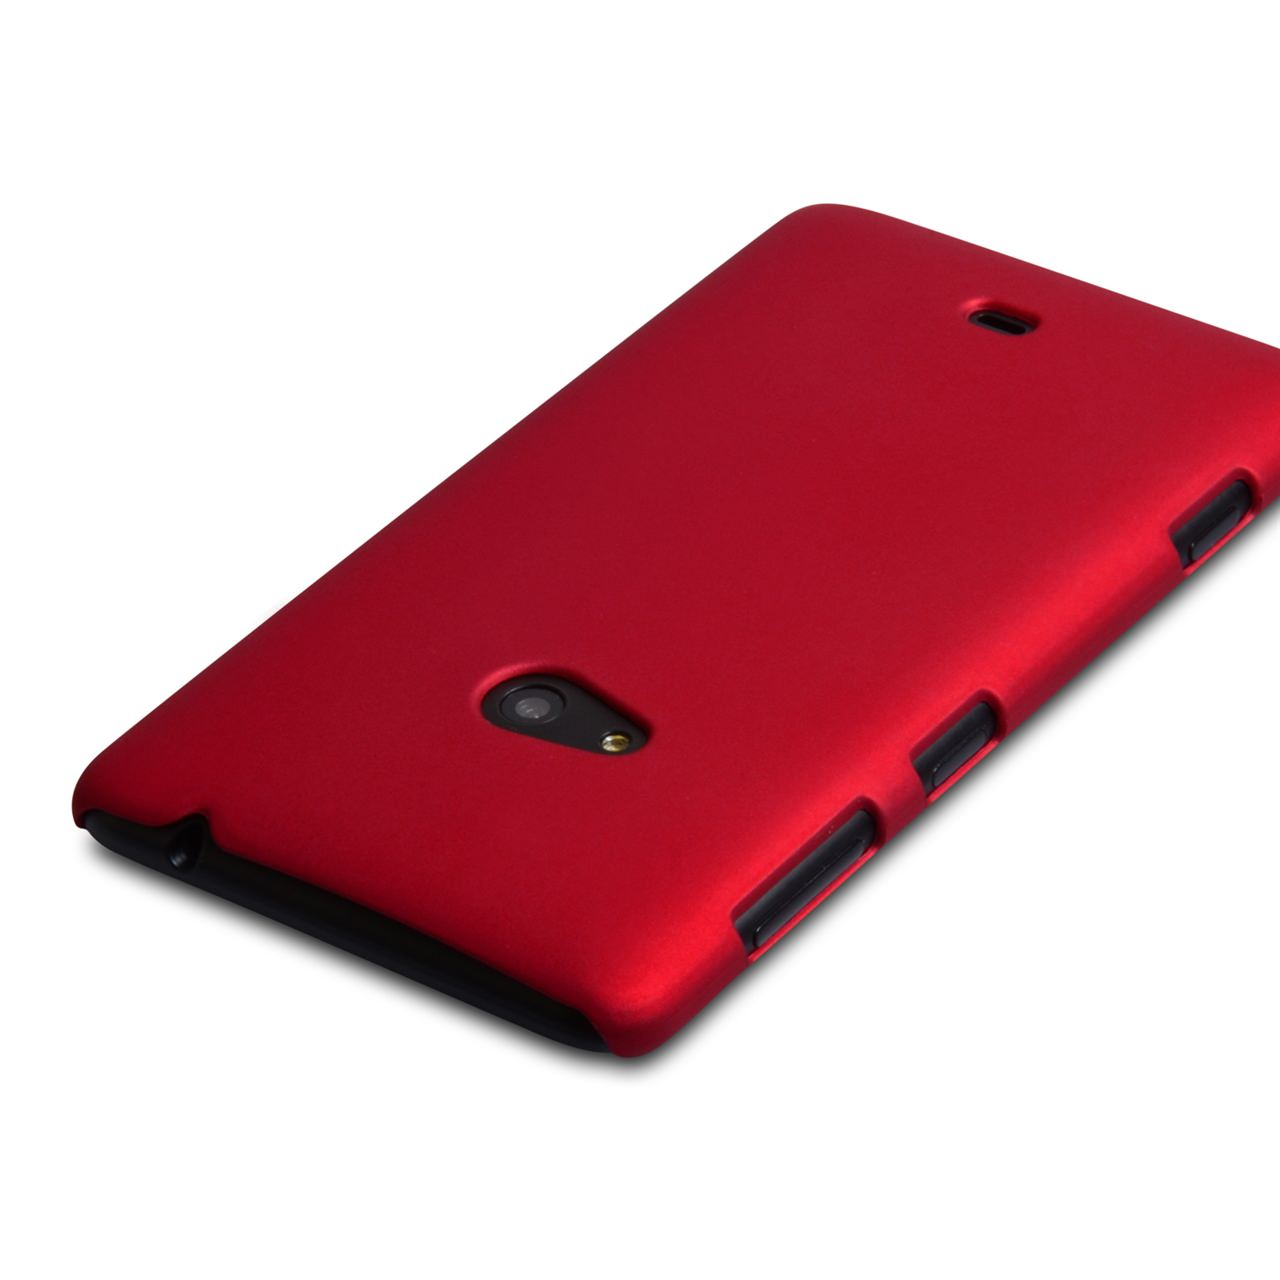 YouSave Accessories Nokia Lumia 625 Hybrid Hard Case - Red